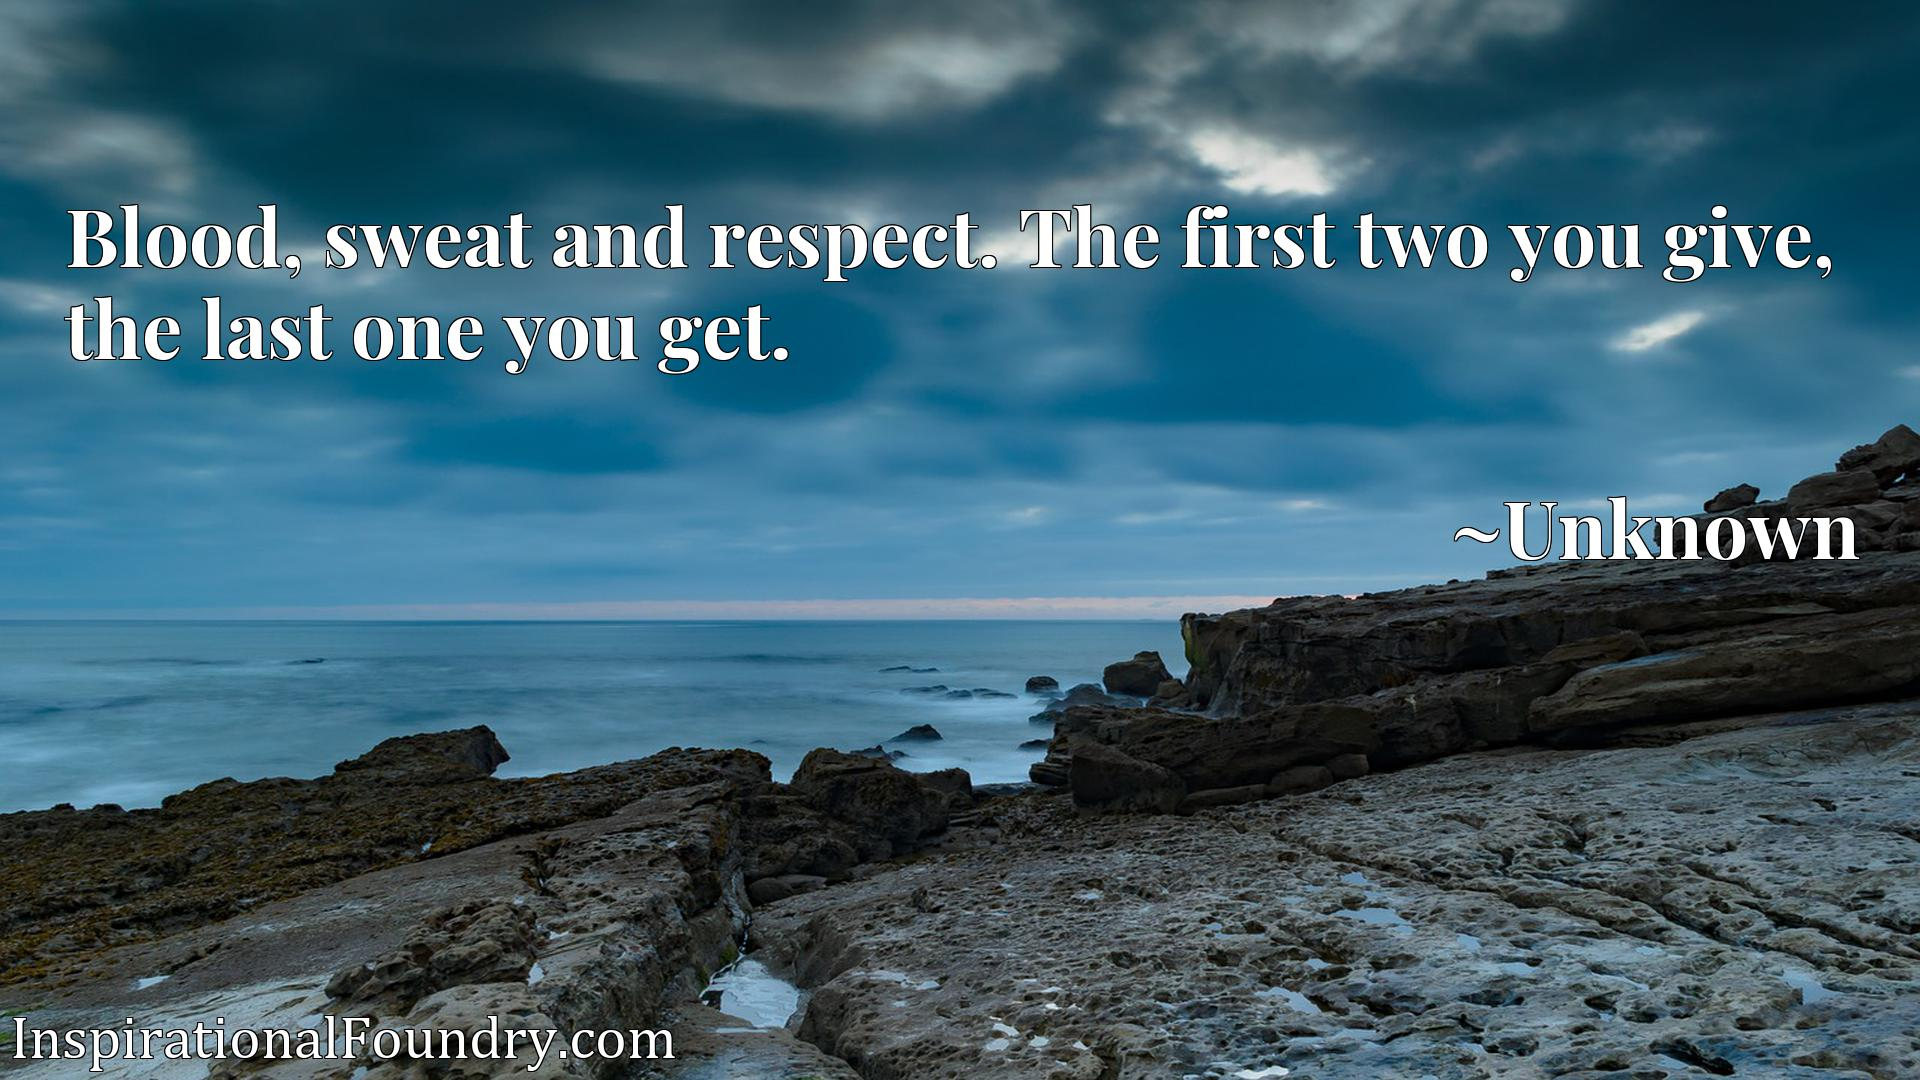 Quote Picture :Blood, sweat and respect. The first two you give, the last one you get.